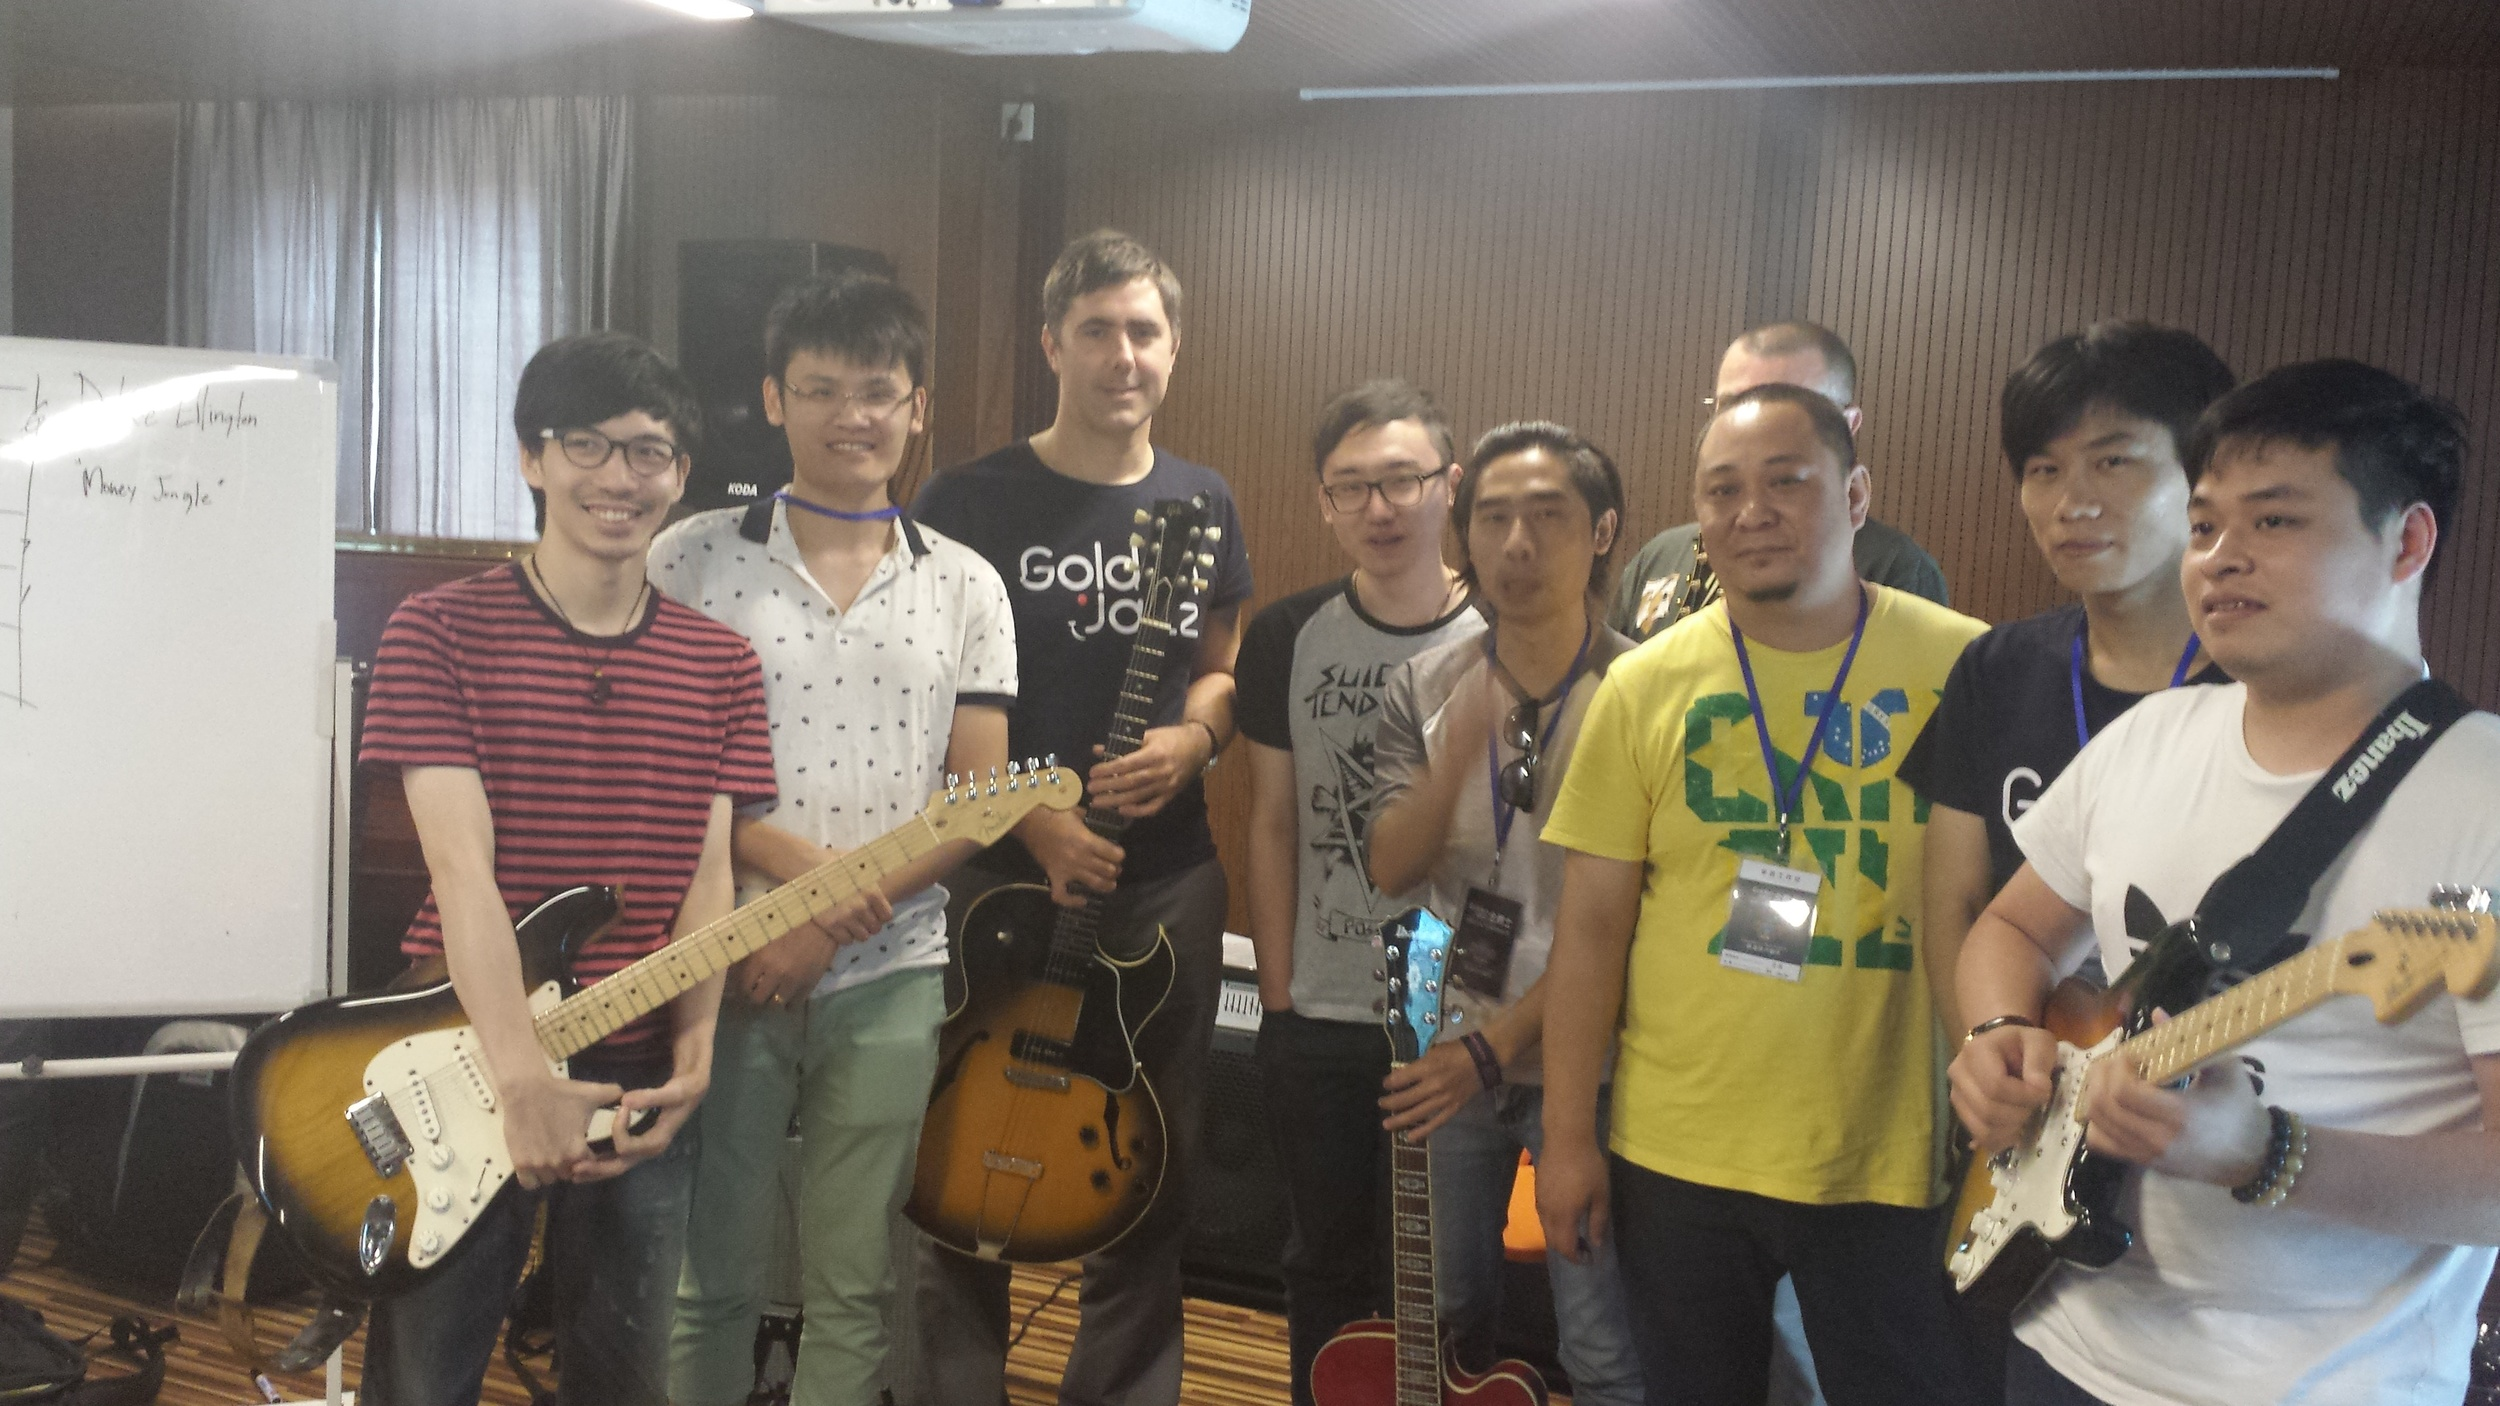 Guitarists group shot after masterclass in China .jpg